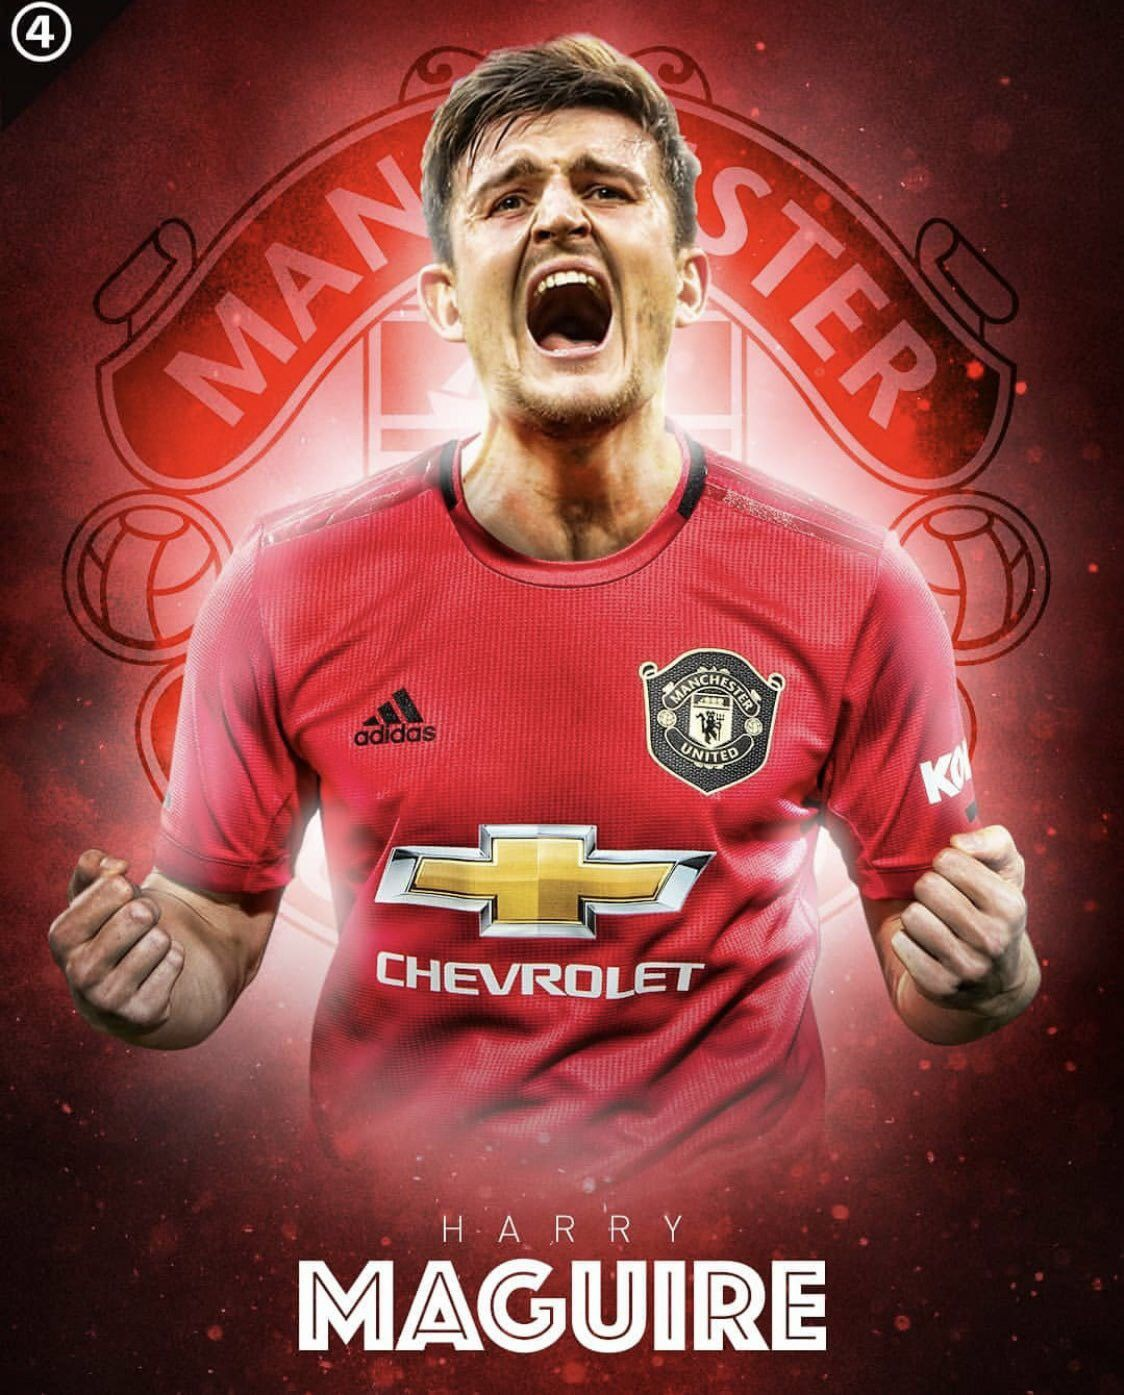 Bbc Manchester United Reached An Agreement With Lester For Harry Maguire Transfer Will Manchester United Wallpaper Manchester United Manchester United Team